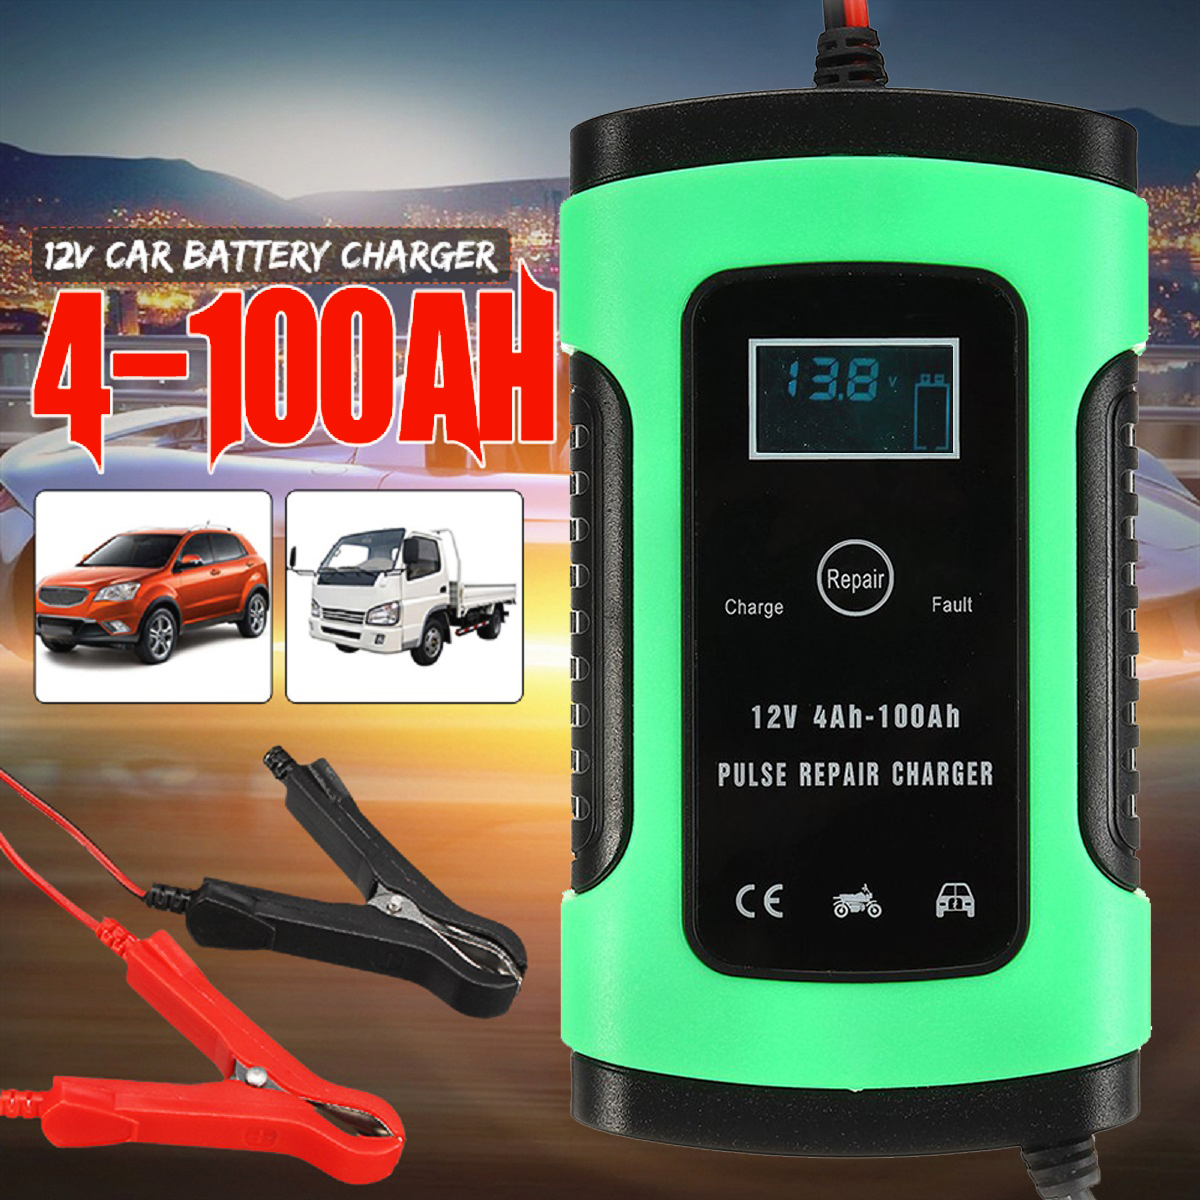 12V 5A Auto <font><b>Car</b></font> Intelligent <font><b>Battery</b></font> <font><b>Charger</b></font> <font><b>Jump</b></font> <font><b>Starter</b></font> LCD Intelligent 100-240V 100AH Pulse Repair Type image